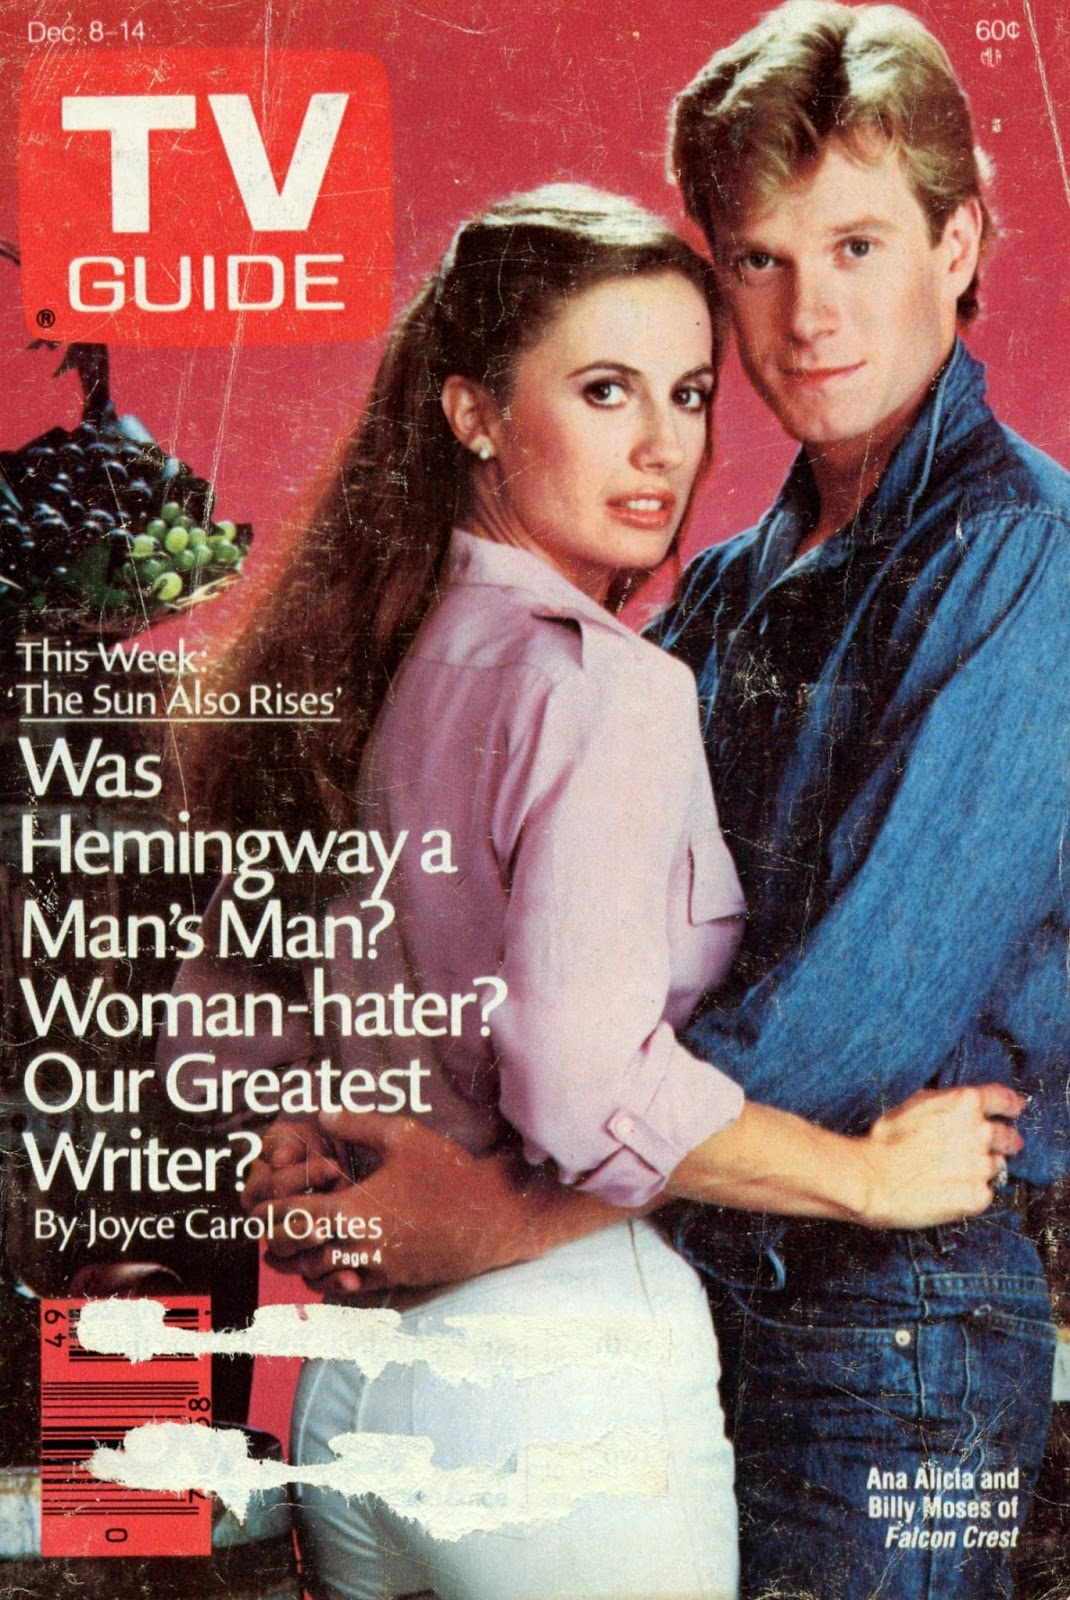 TV Guide Cover-December 8-14, 1984